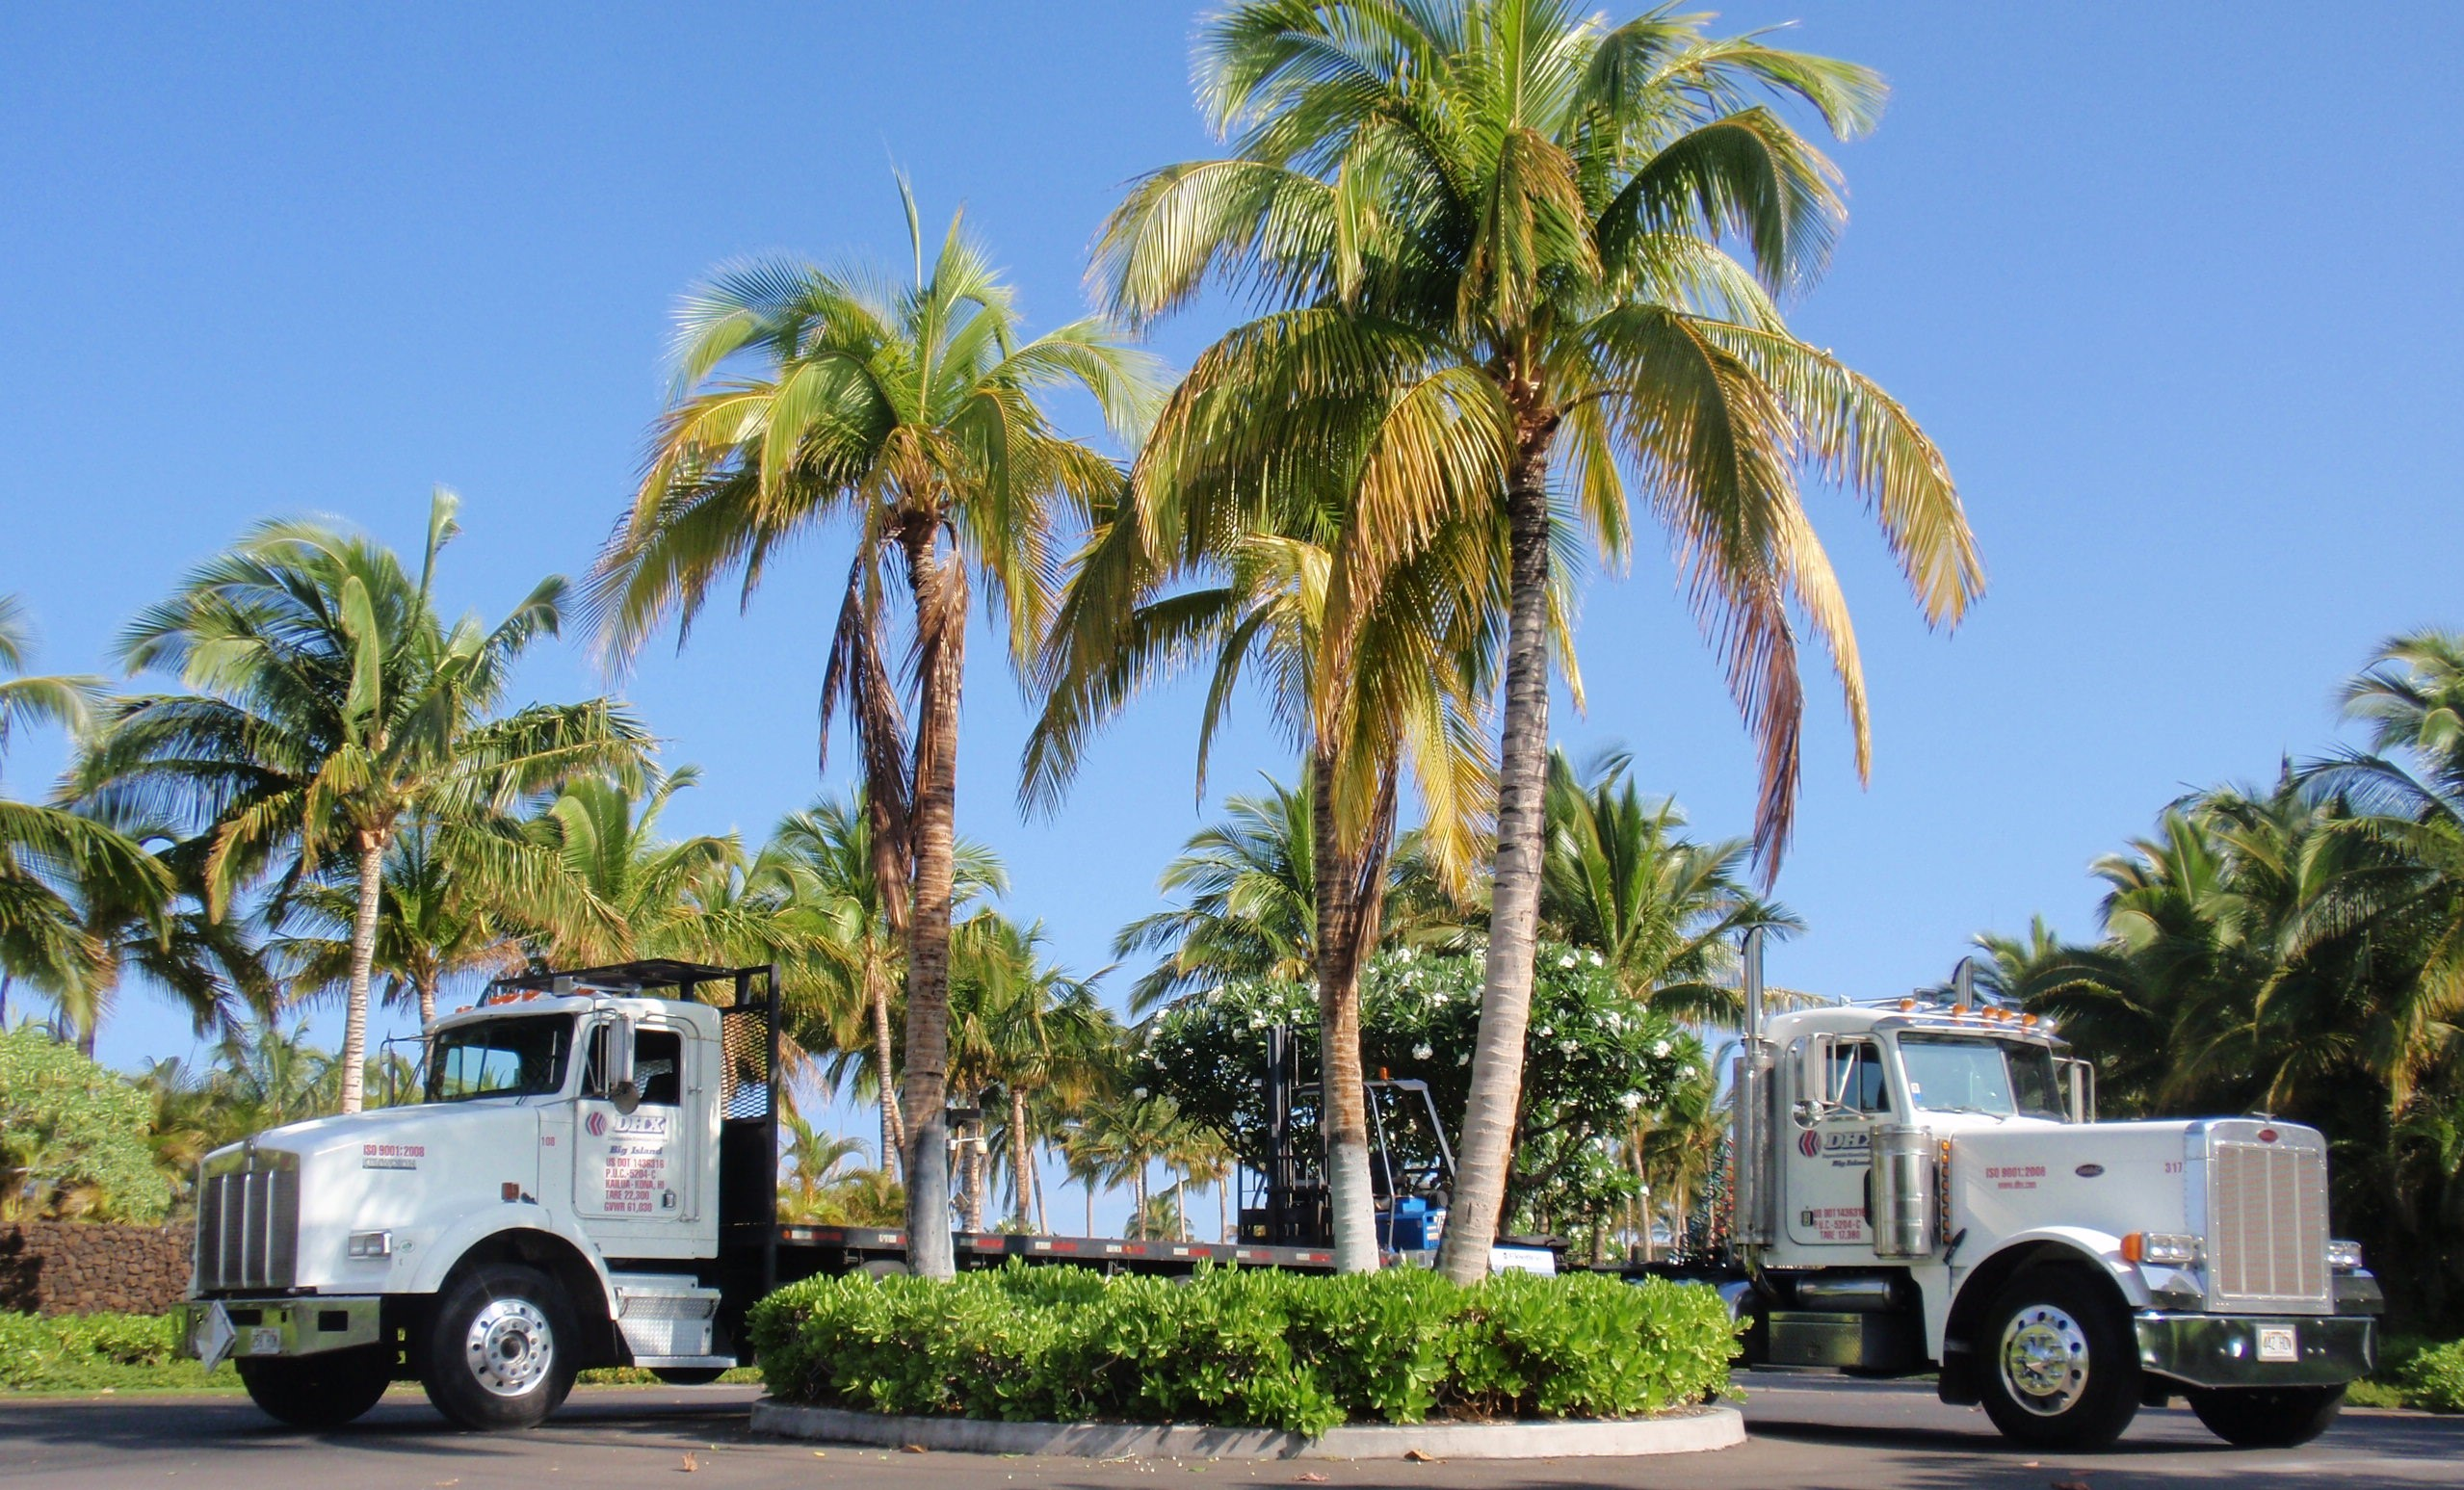 Trucking in Hawaii isn't quite the paradise it may seem.